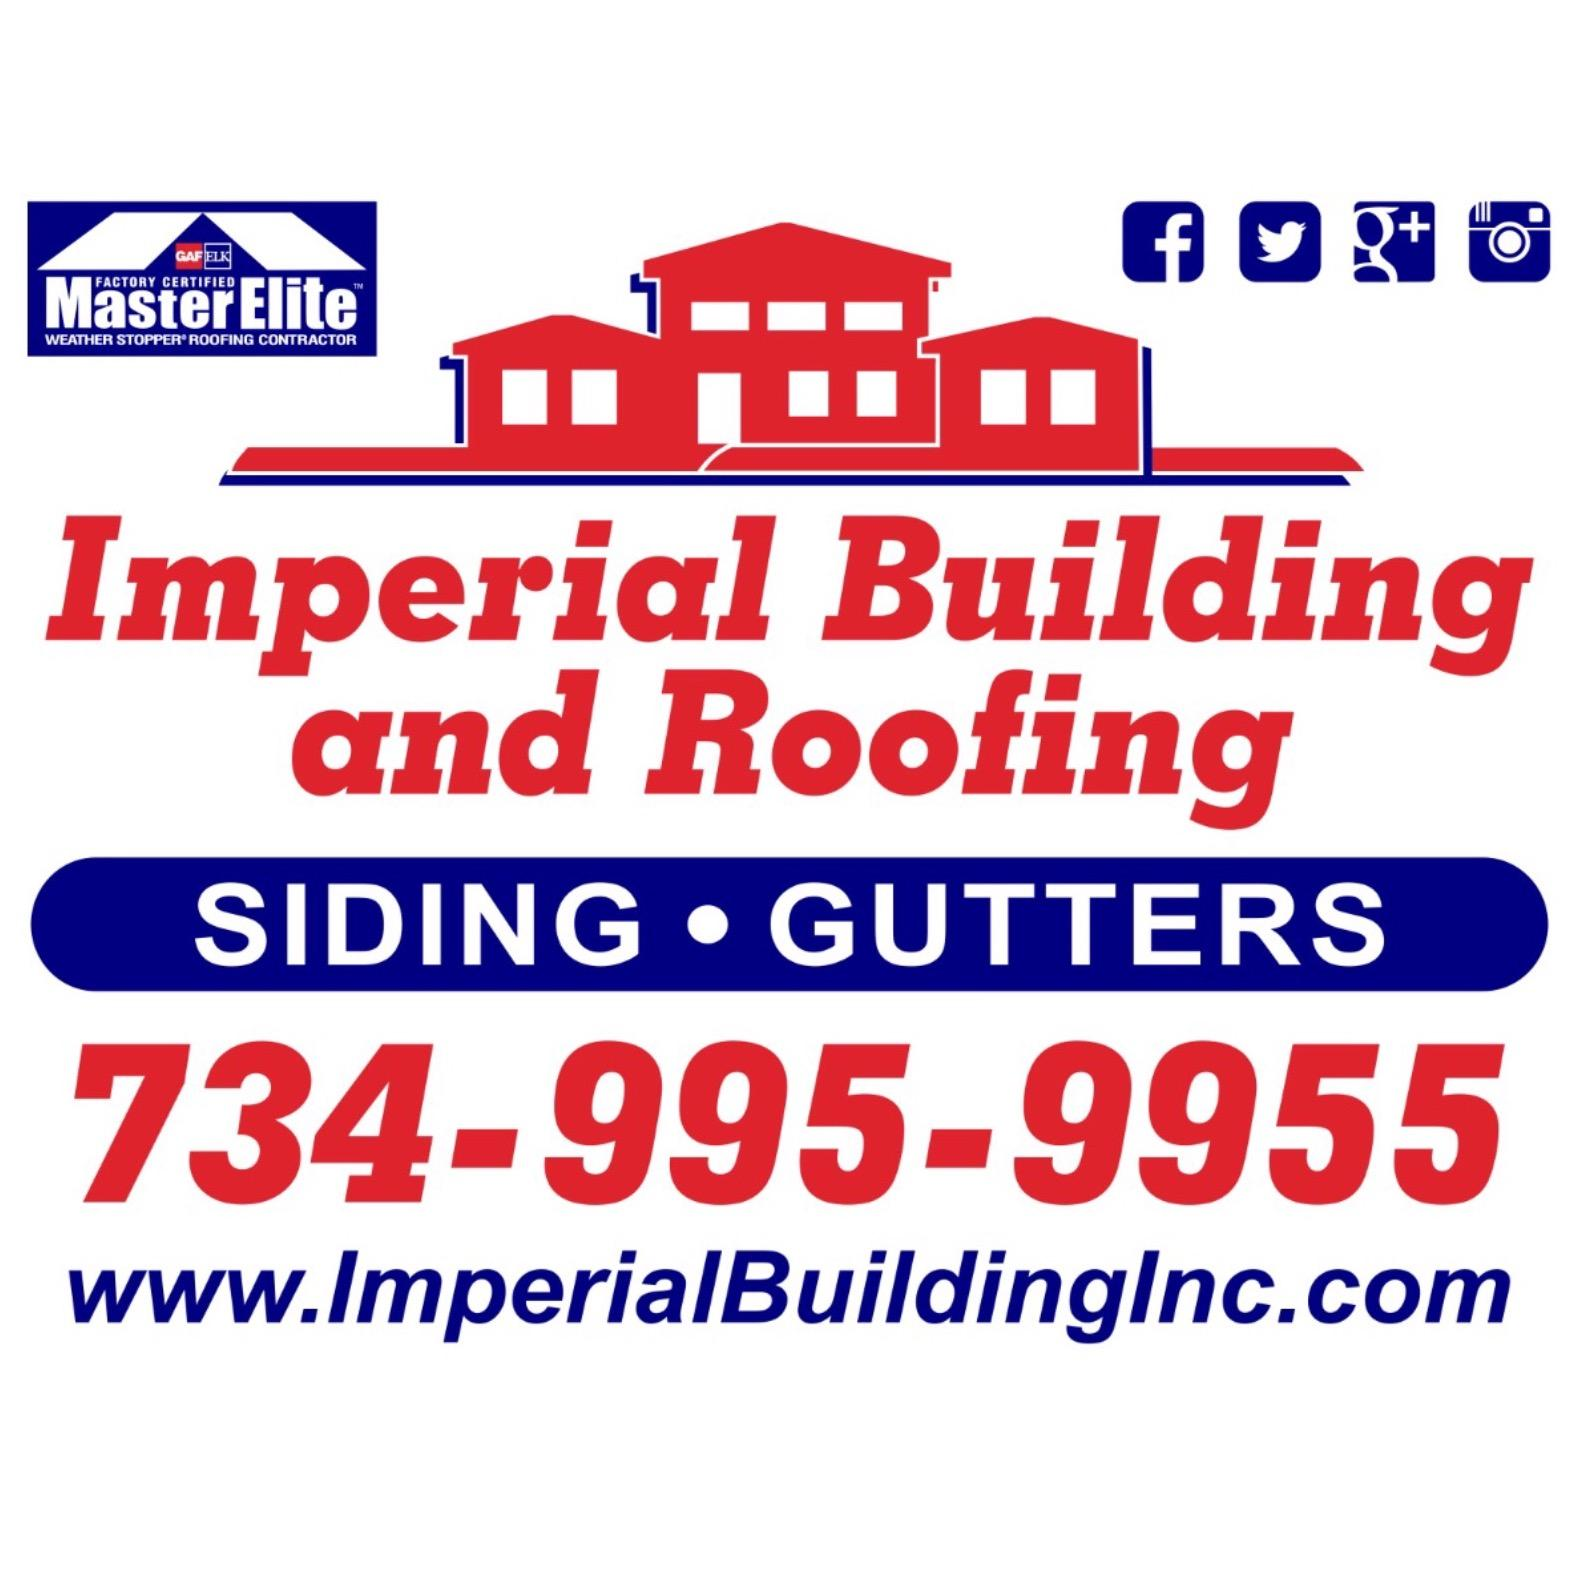 Imperial Building & Roofing image 12